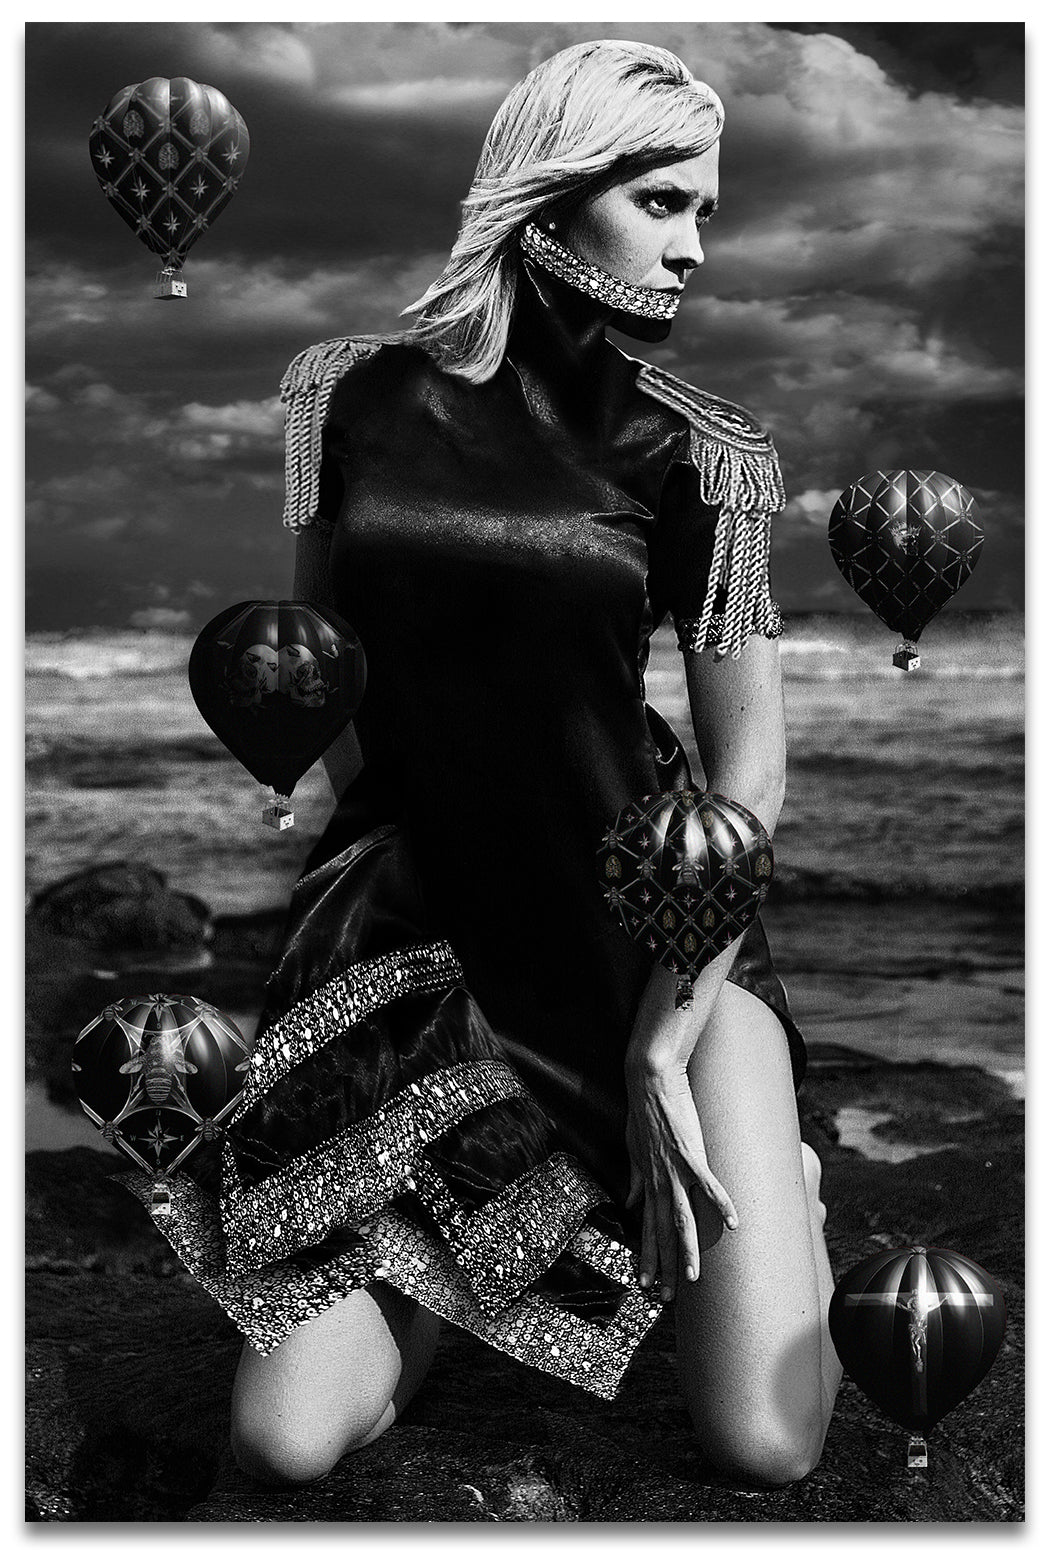 Black & White Portrait on a woman on her knees at the beach with a Neck Corset and small Black Hot Air Balloons-Metal Print-Aluminum Print